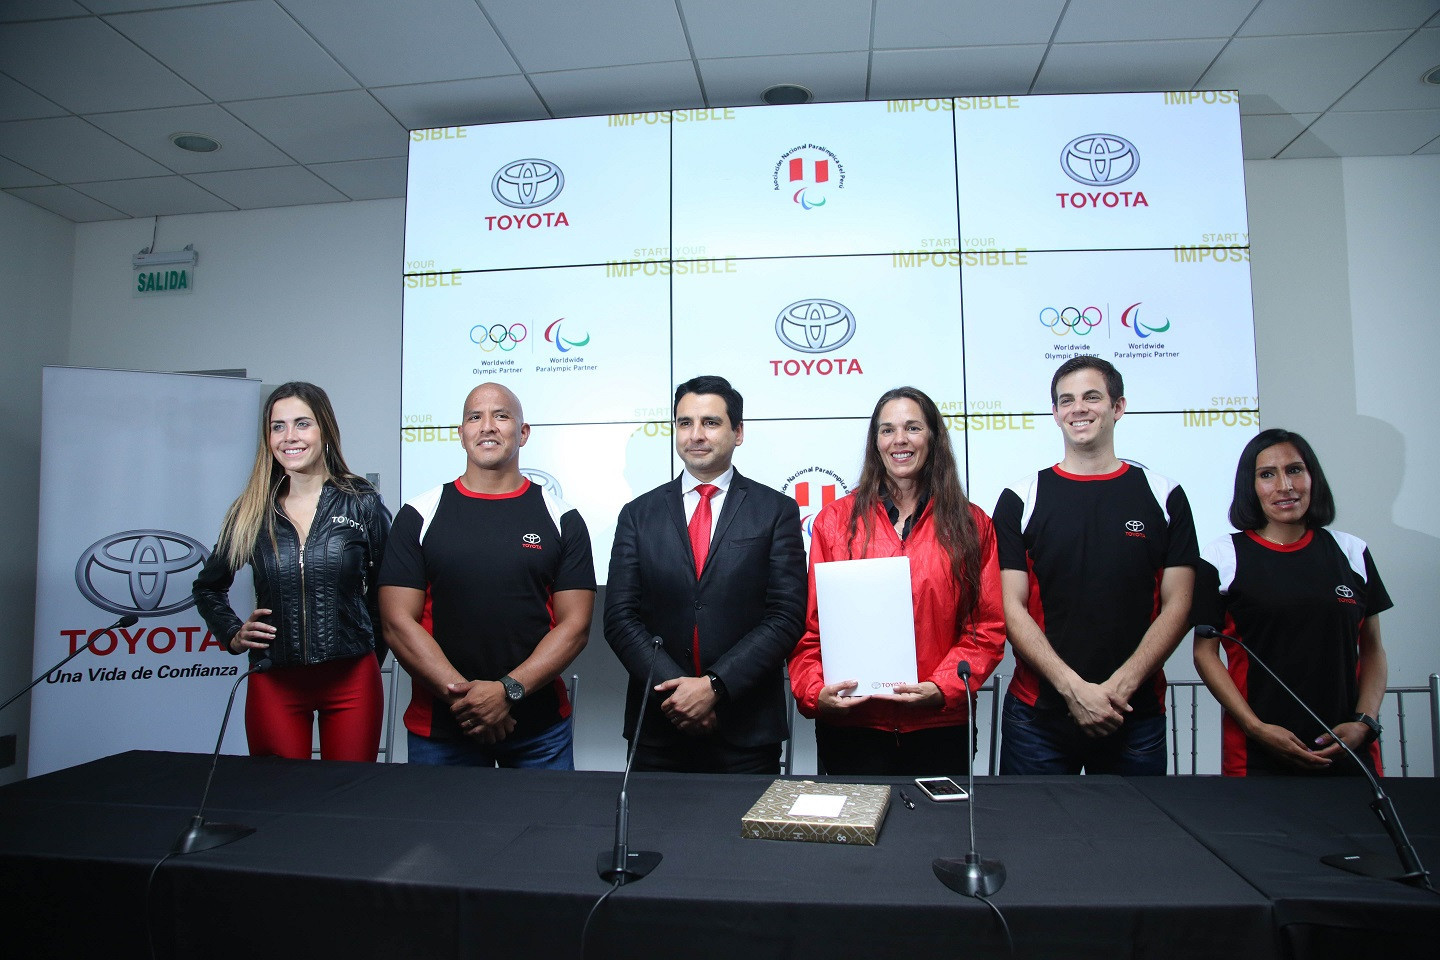 The deal between the National Paralympic Association of Peru and Toyota includes badminton player and athlete Pedro Pablo de Vinatea and Carlos Felipa becoming ambassadors for the Japanese car manufacturer ©ANPP